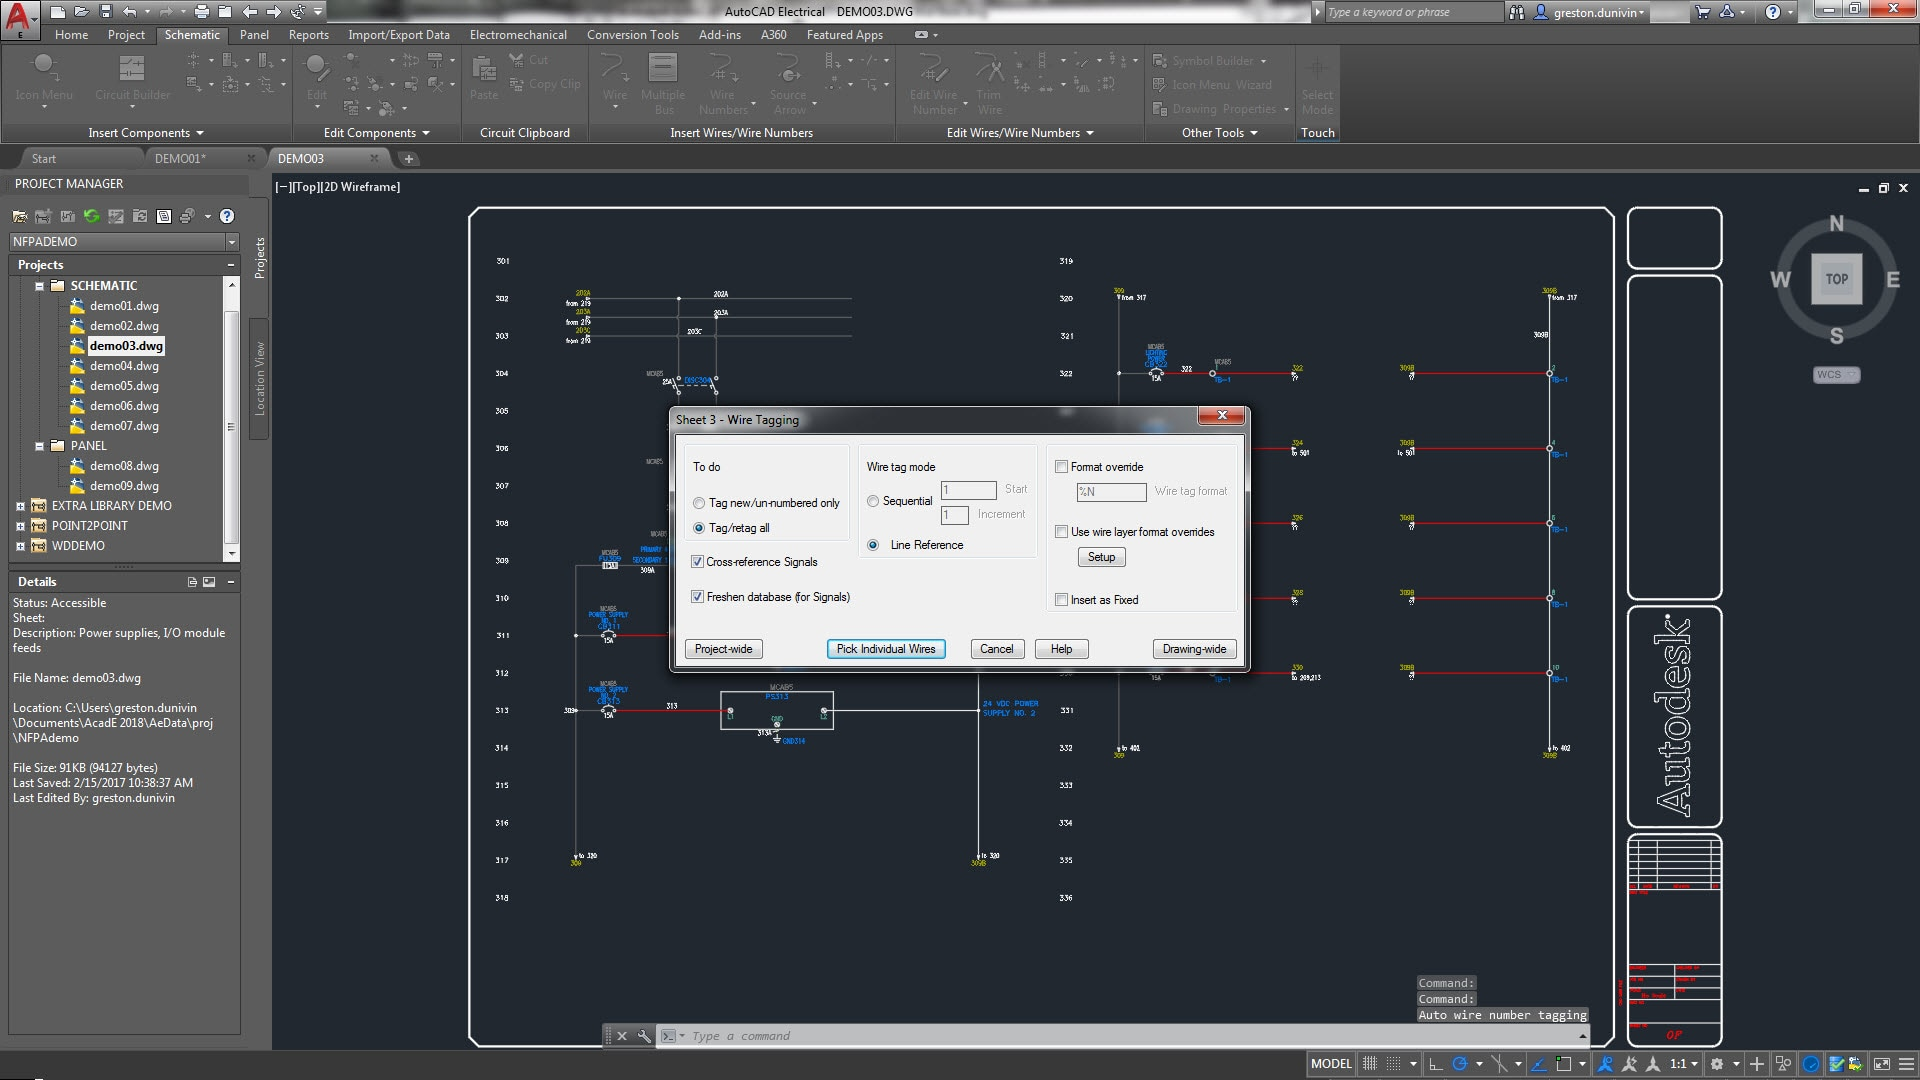 Autocad Electrical Toolset Design Software Basics Of Electronic Circuit Schematic